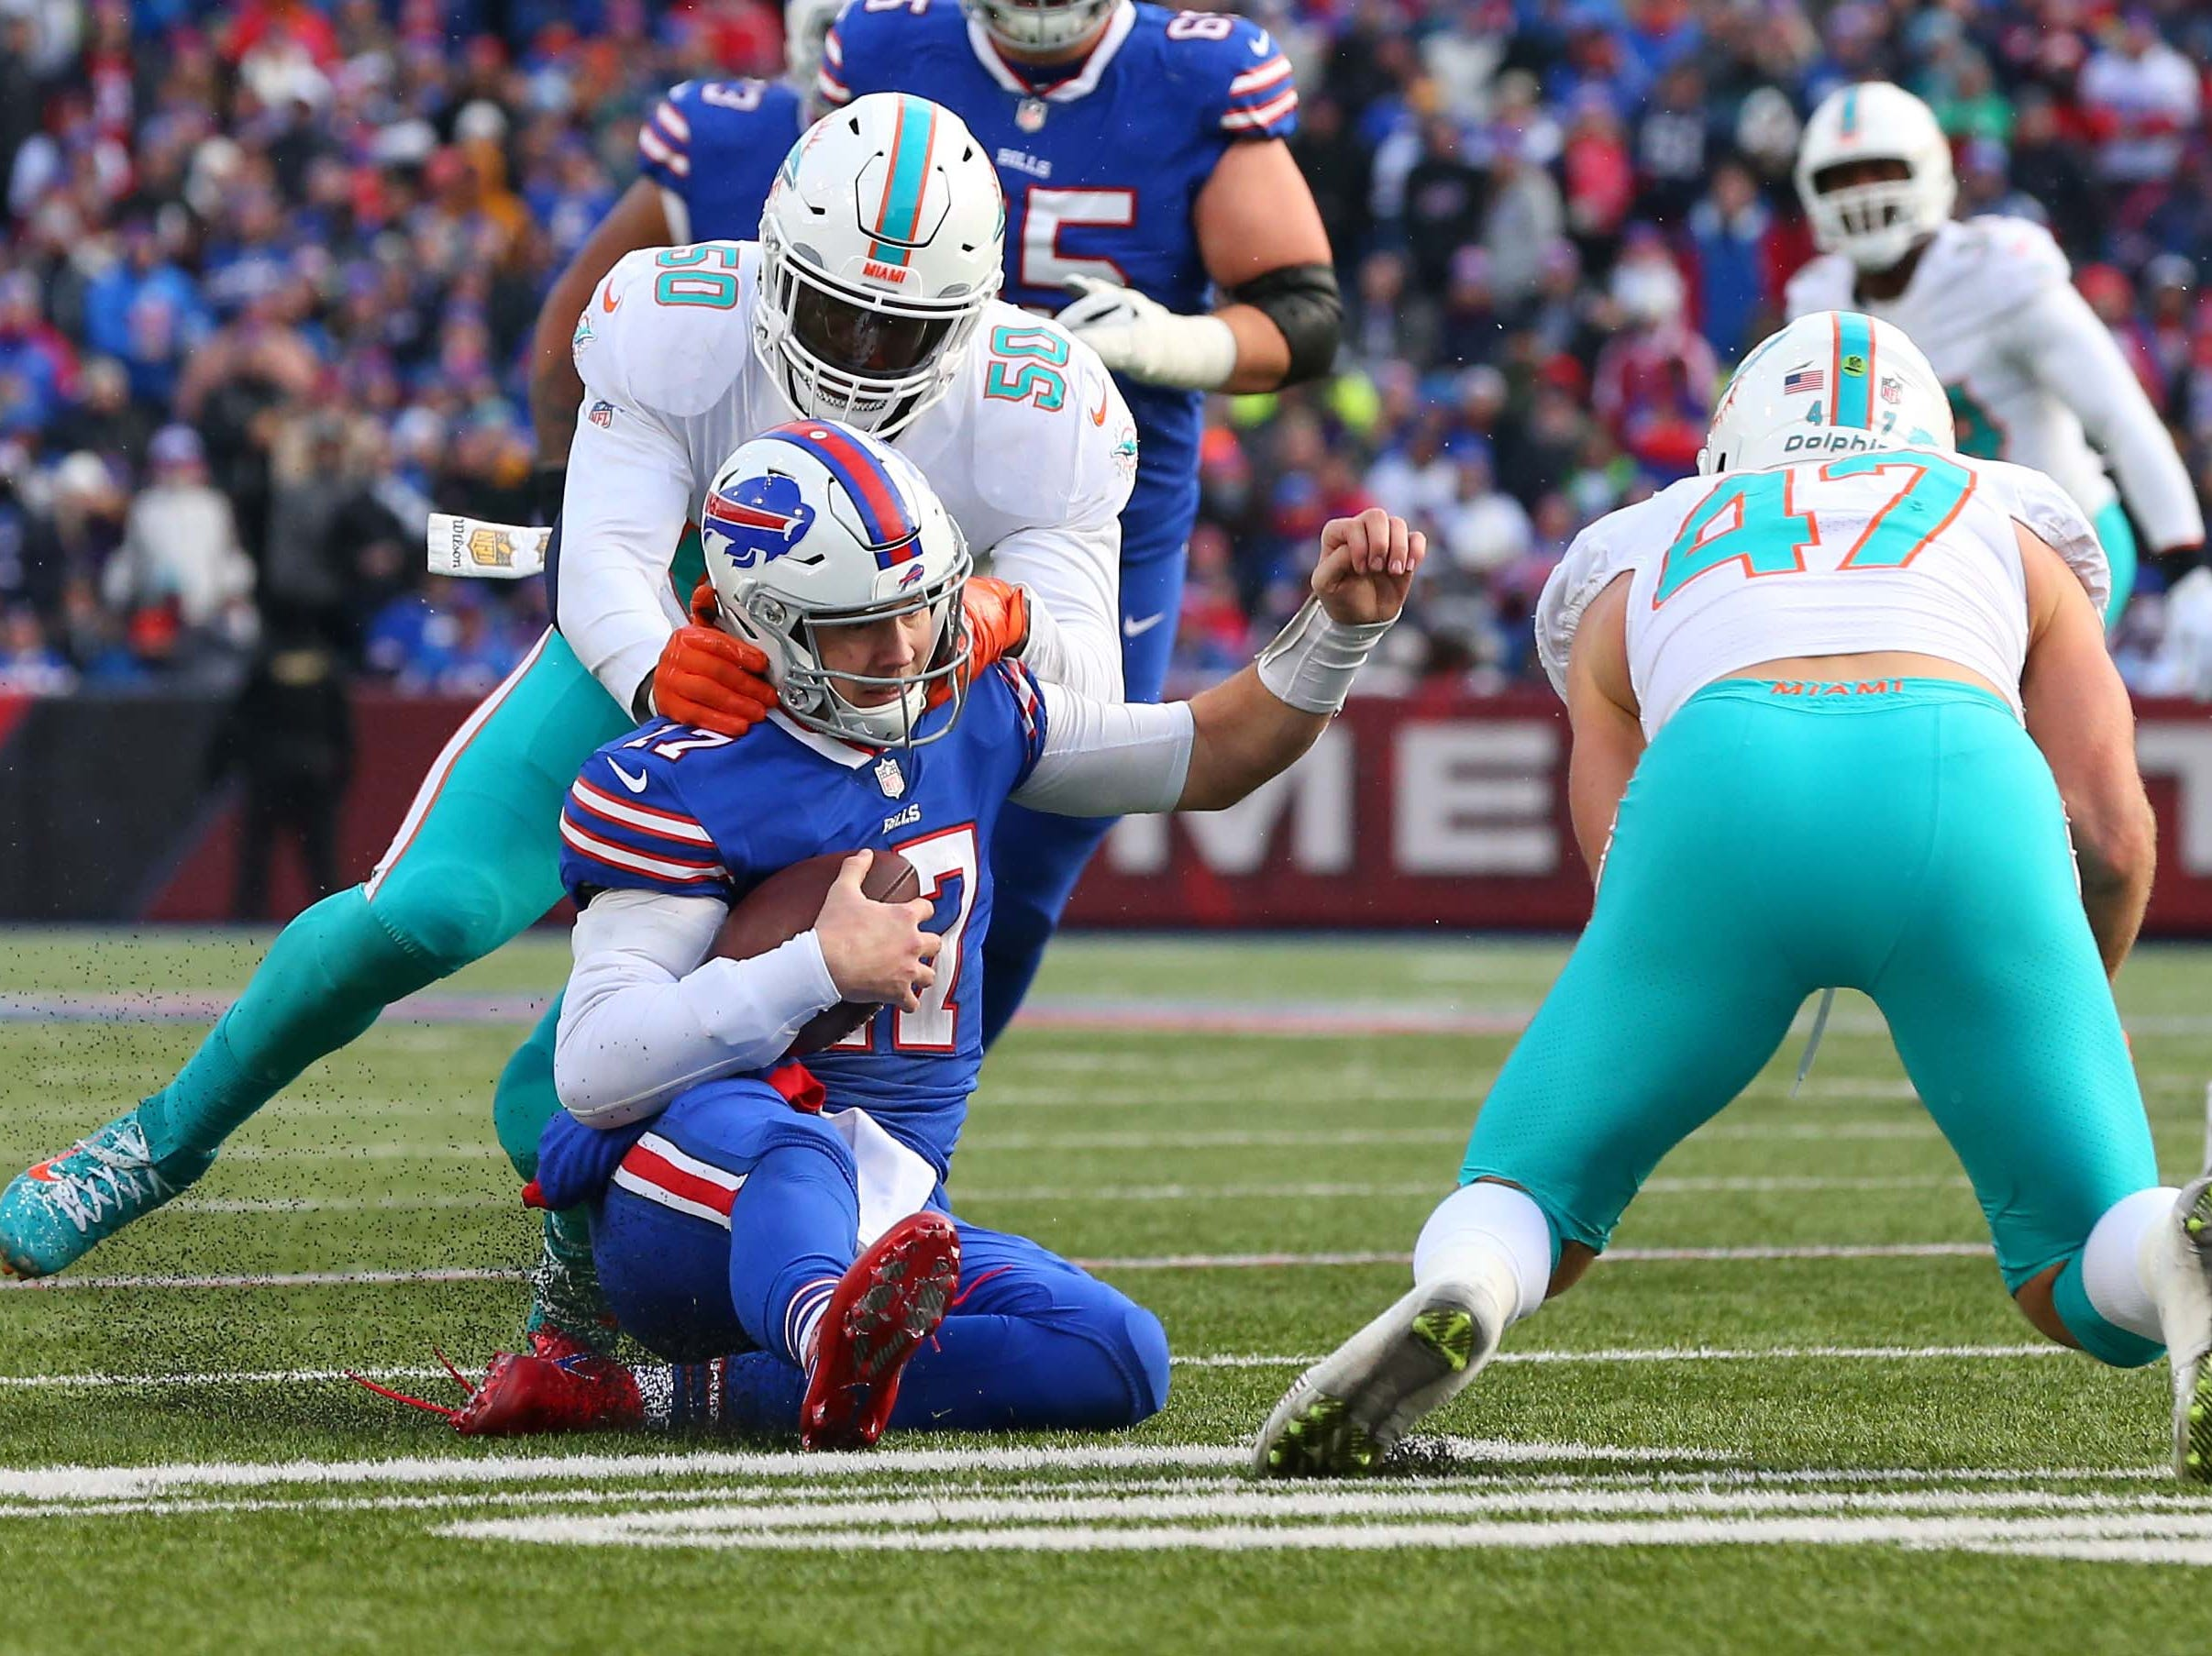 Dec 30, 2018; Orchard Park, NY, USA; Buffalo Bills quarterback Josh Allen (17) slides after a run as Miami Dolphins defensive end Andre Branch (50) and outside linebacker Kiko Alonso (47) defend during the third quarter at New Era Field. Mandatory Credit: Rich Barnes-USA TODAY Sports